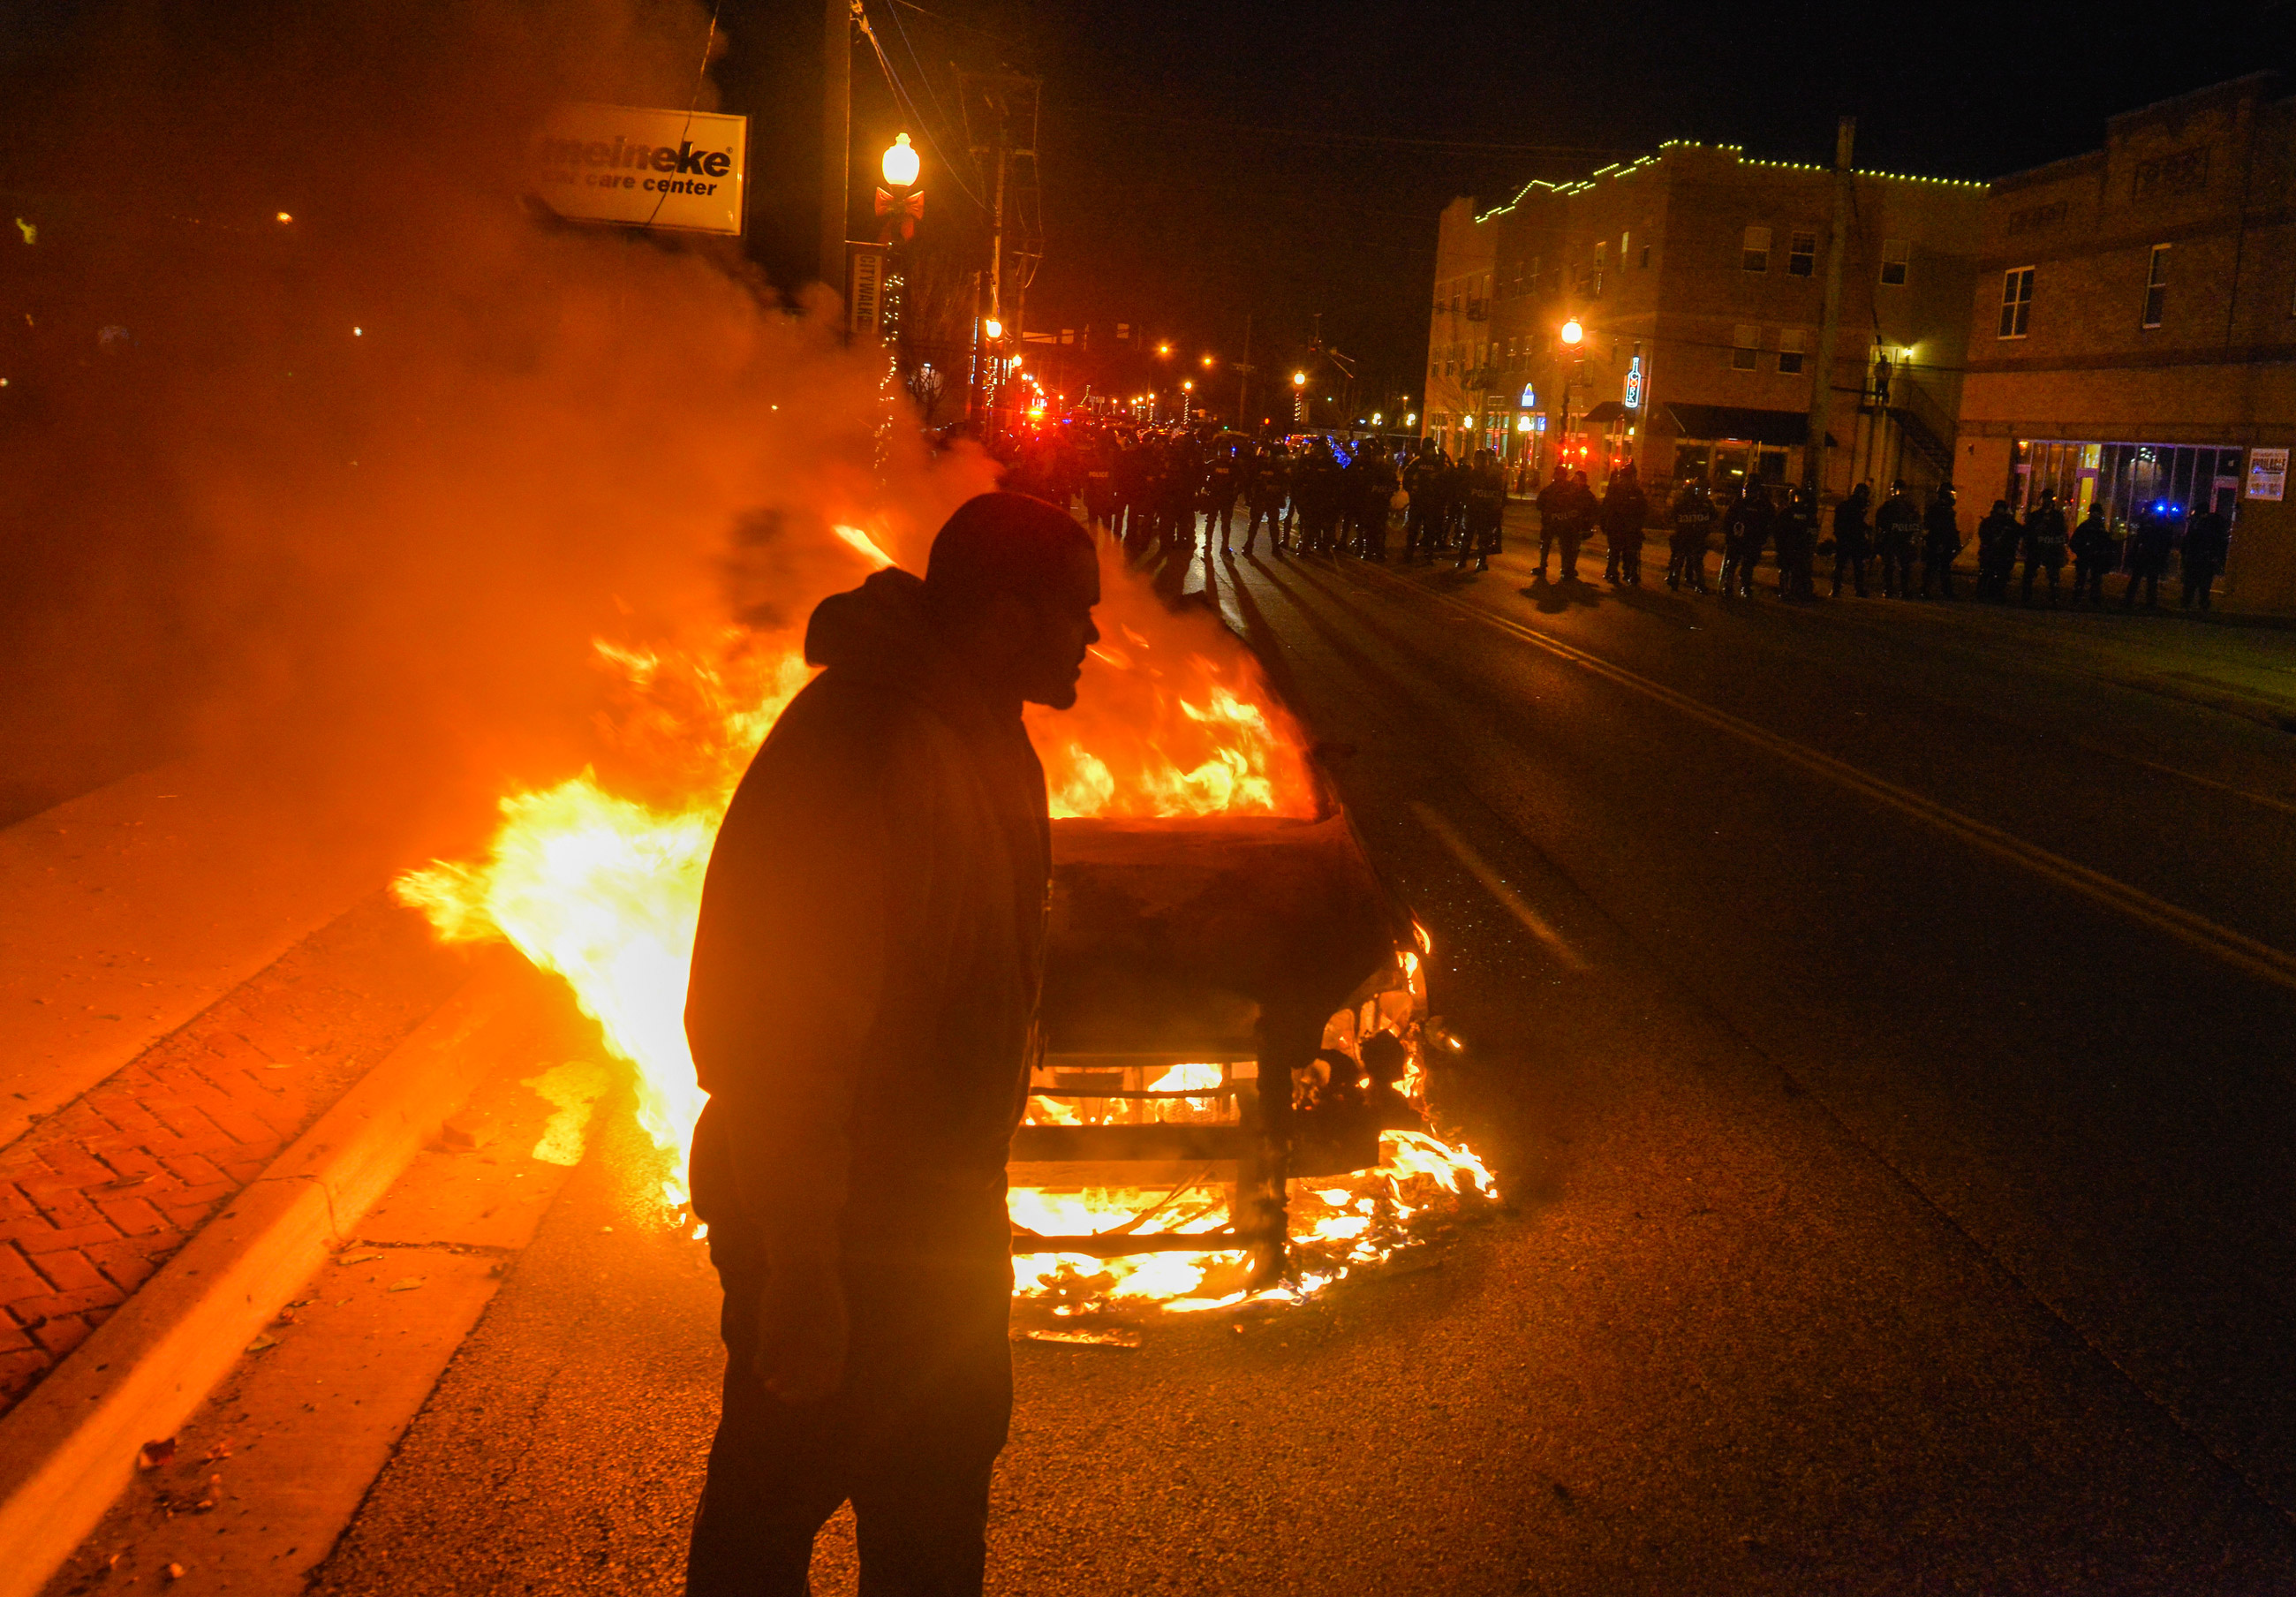 FERGUSON, MO - NOVEMBER 24: A man makes his way past a burning police car as a line of officers prepare to clear the street of protesters after an announcement that Ferguson police officer Darren Wilson will not be indicted in the fatal shooting of unarmed teenager Michael Brown, on Monday, November 24, 2014, in Ferguson, MO.  The shooting of Michael Brown, an unarmed black 18-year-old by white Ferguson police officer Darren Wilson, has captivated the nation as a grand jury deliberated to decide whether to charge the officer with a crime.   (Photo by Jahi Chikwendiu/The Washington Post)